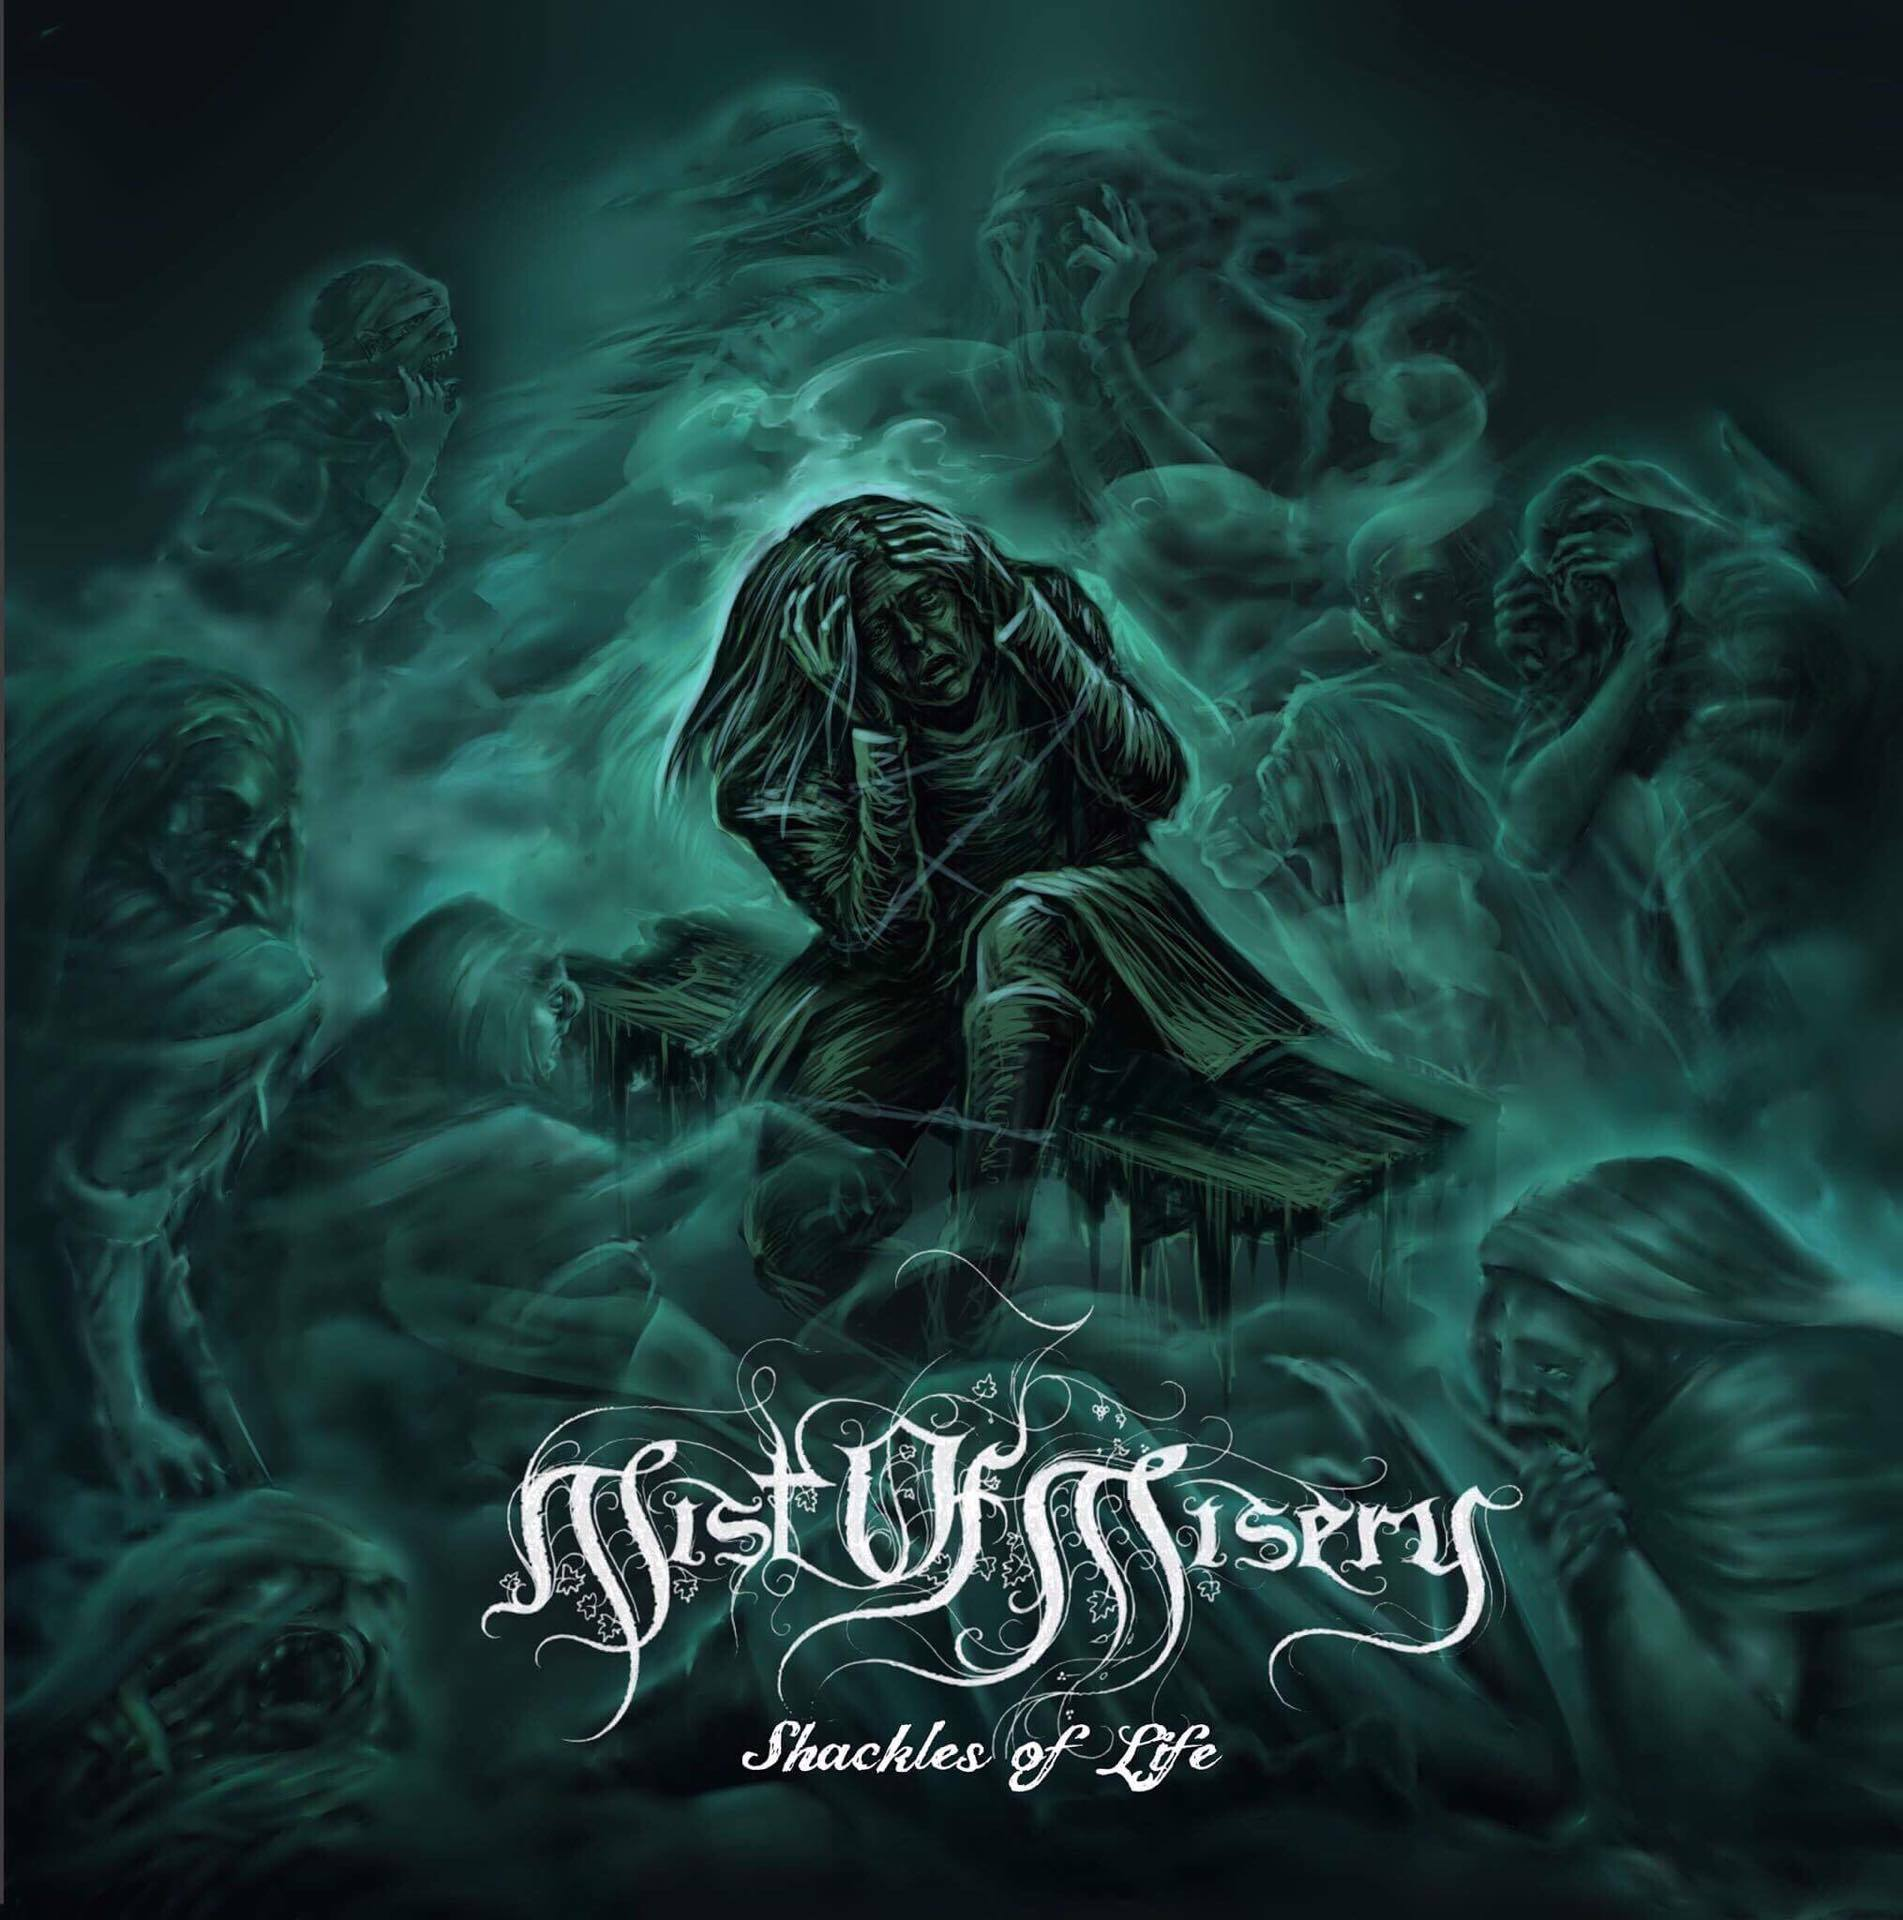 Mist of Misery - Shackles of Life 01